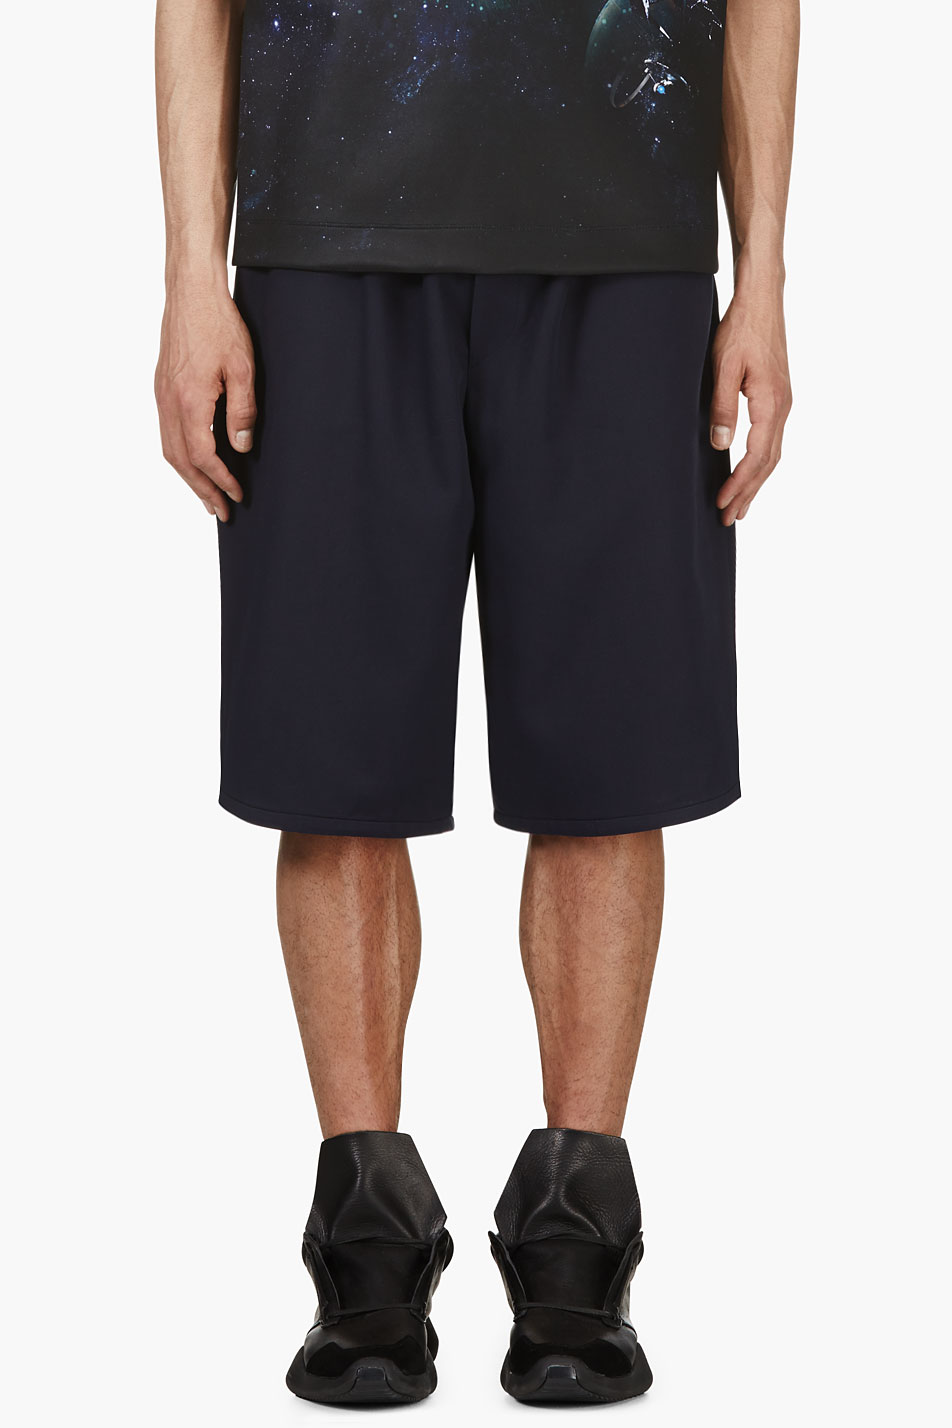 juun.j ssense exclusive navy basketball shorts